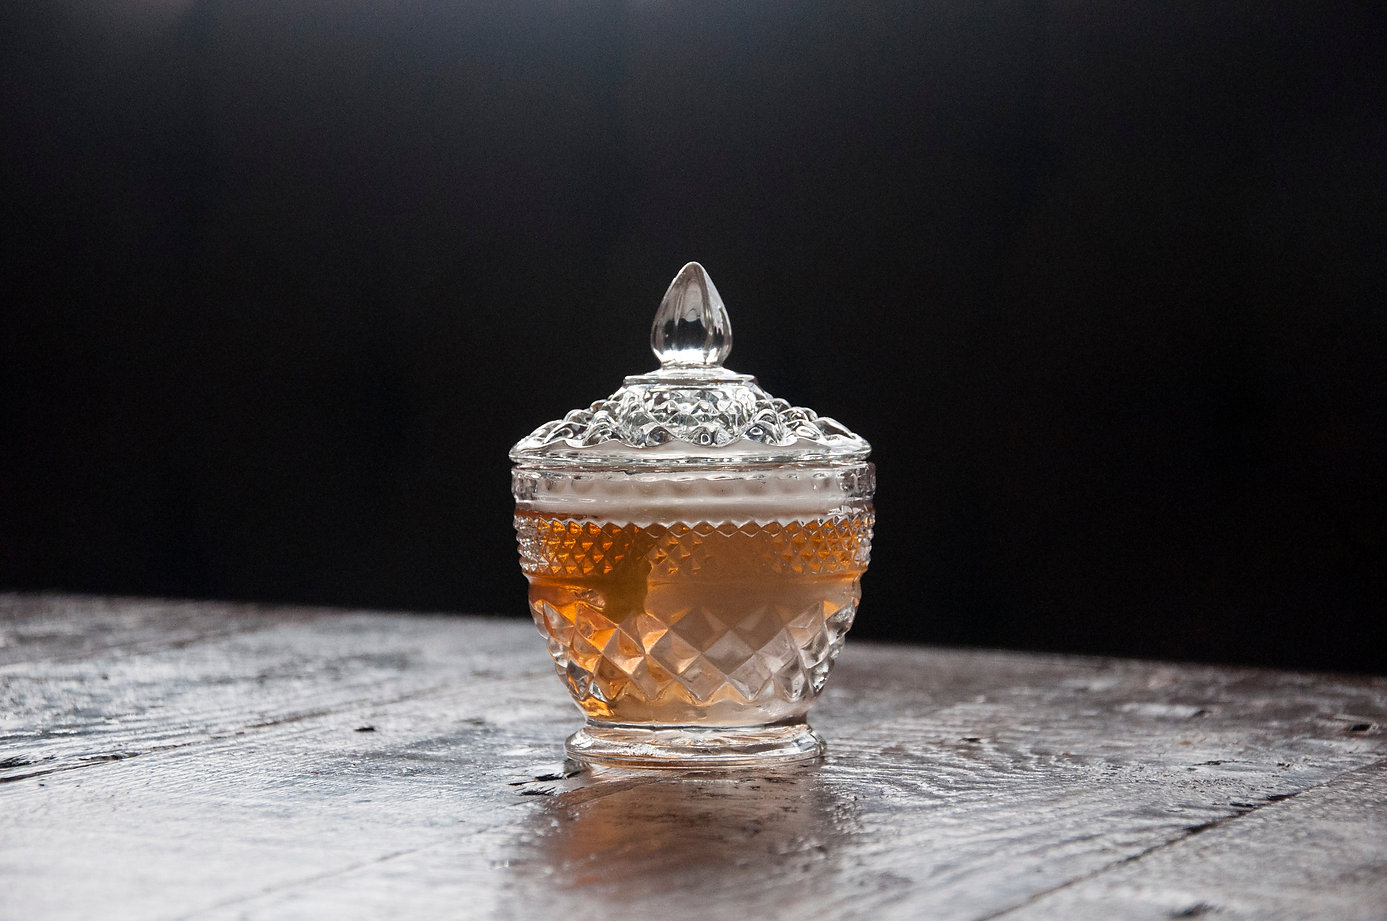 Smoked Cocktail sealed in vintage glass jar on wook table iwht dark background